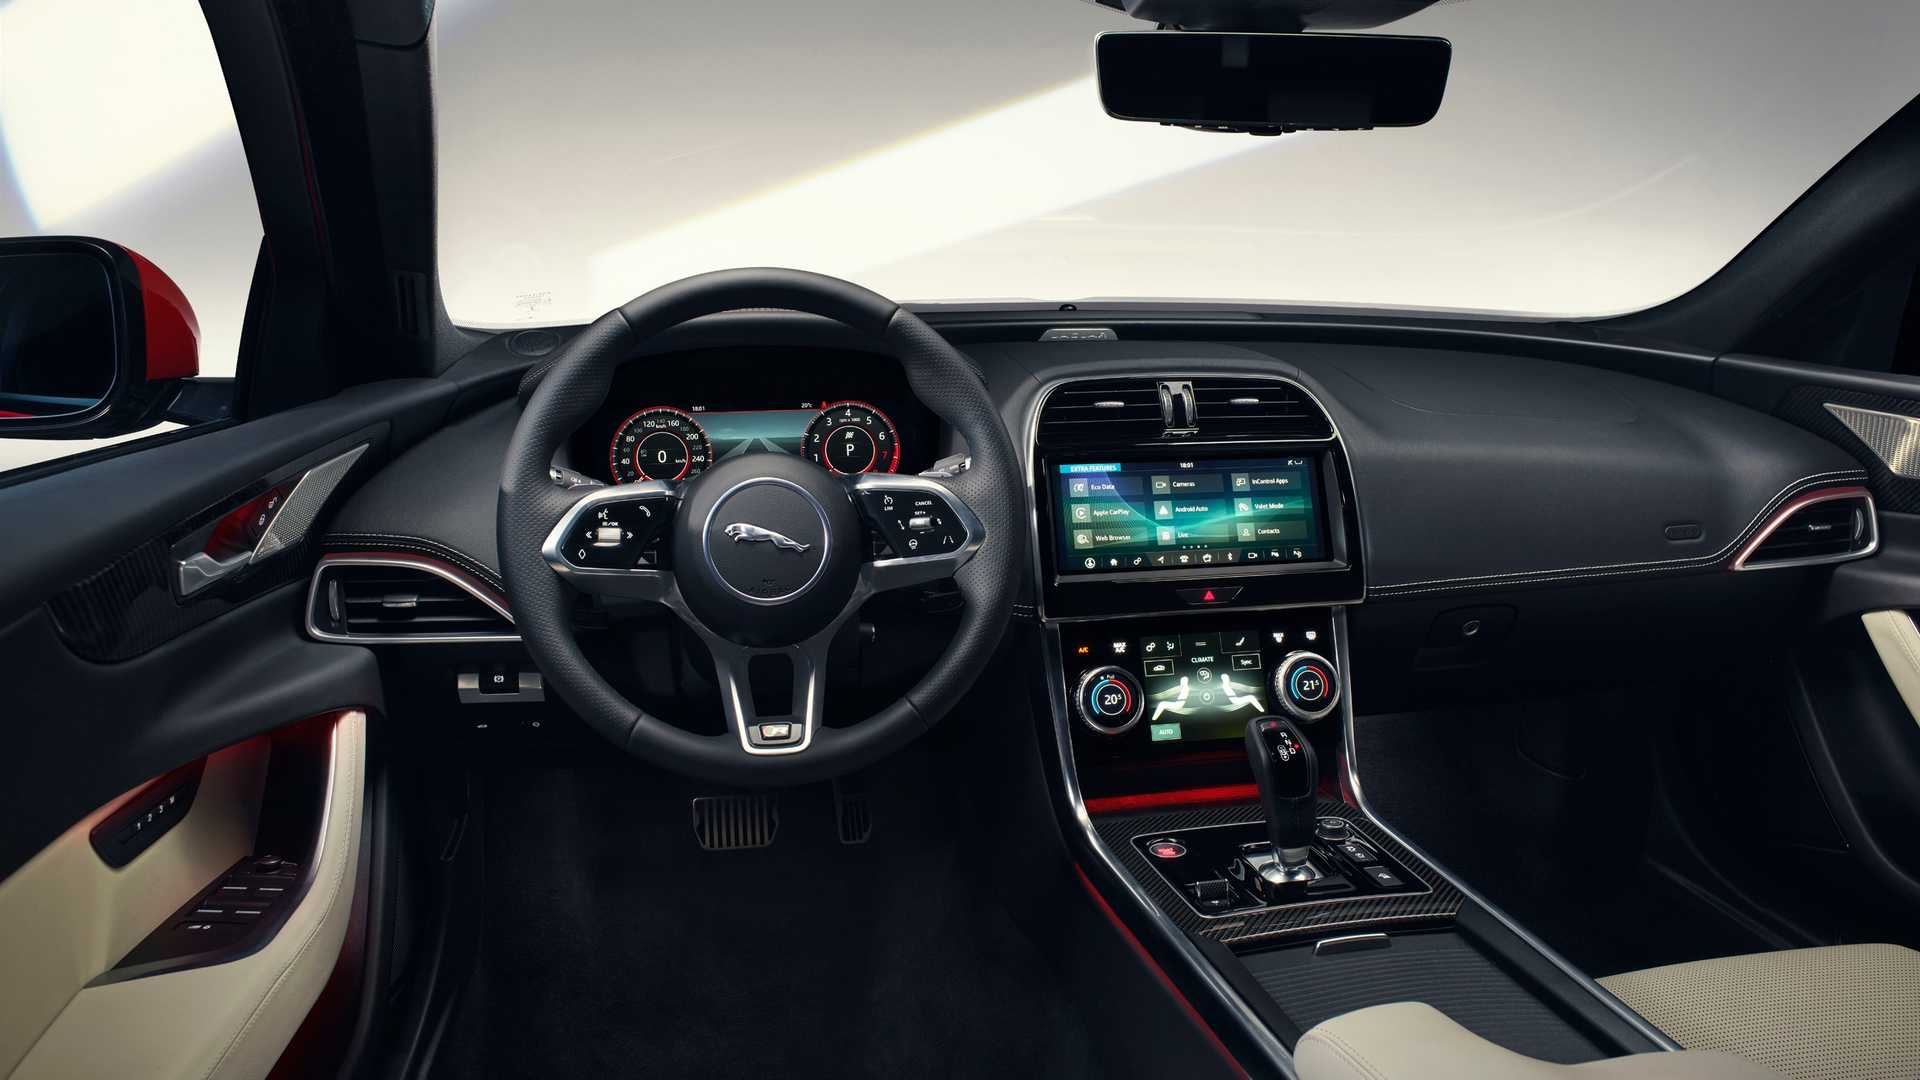 75 The Best Jaguar Xe 2020 Interior New Model And Performance